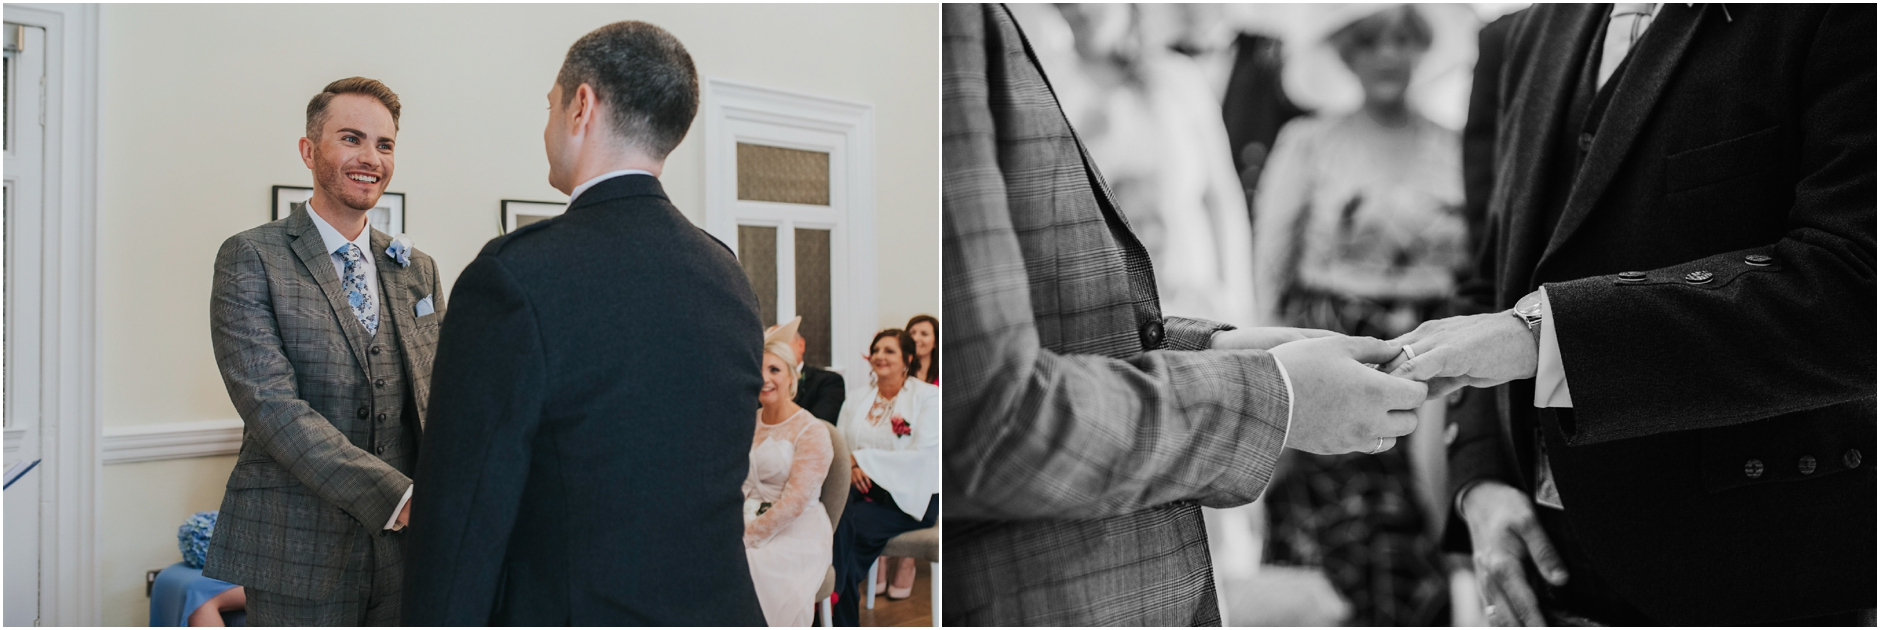 same sex wedding photographer glasgow scotland